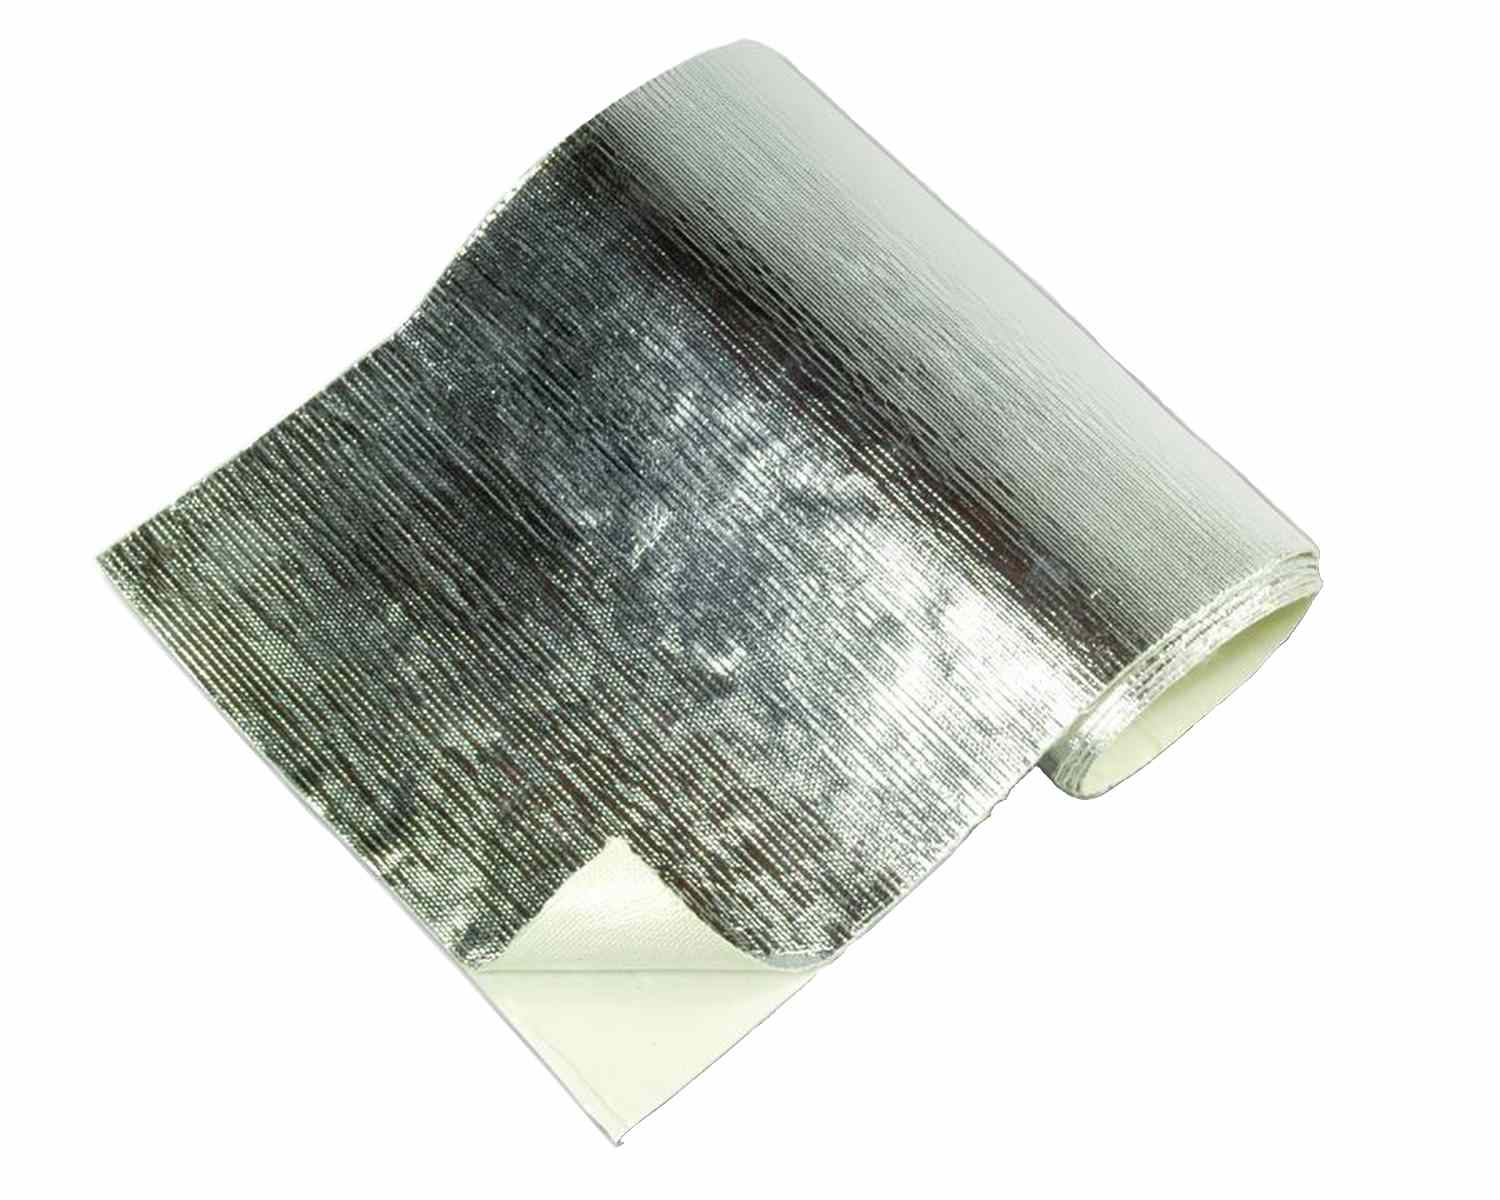 Thermo-Tec Thermo Tec 13500 Adhesive Backed Heat Barrier at Sears.com